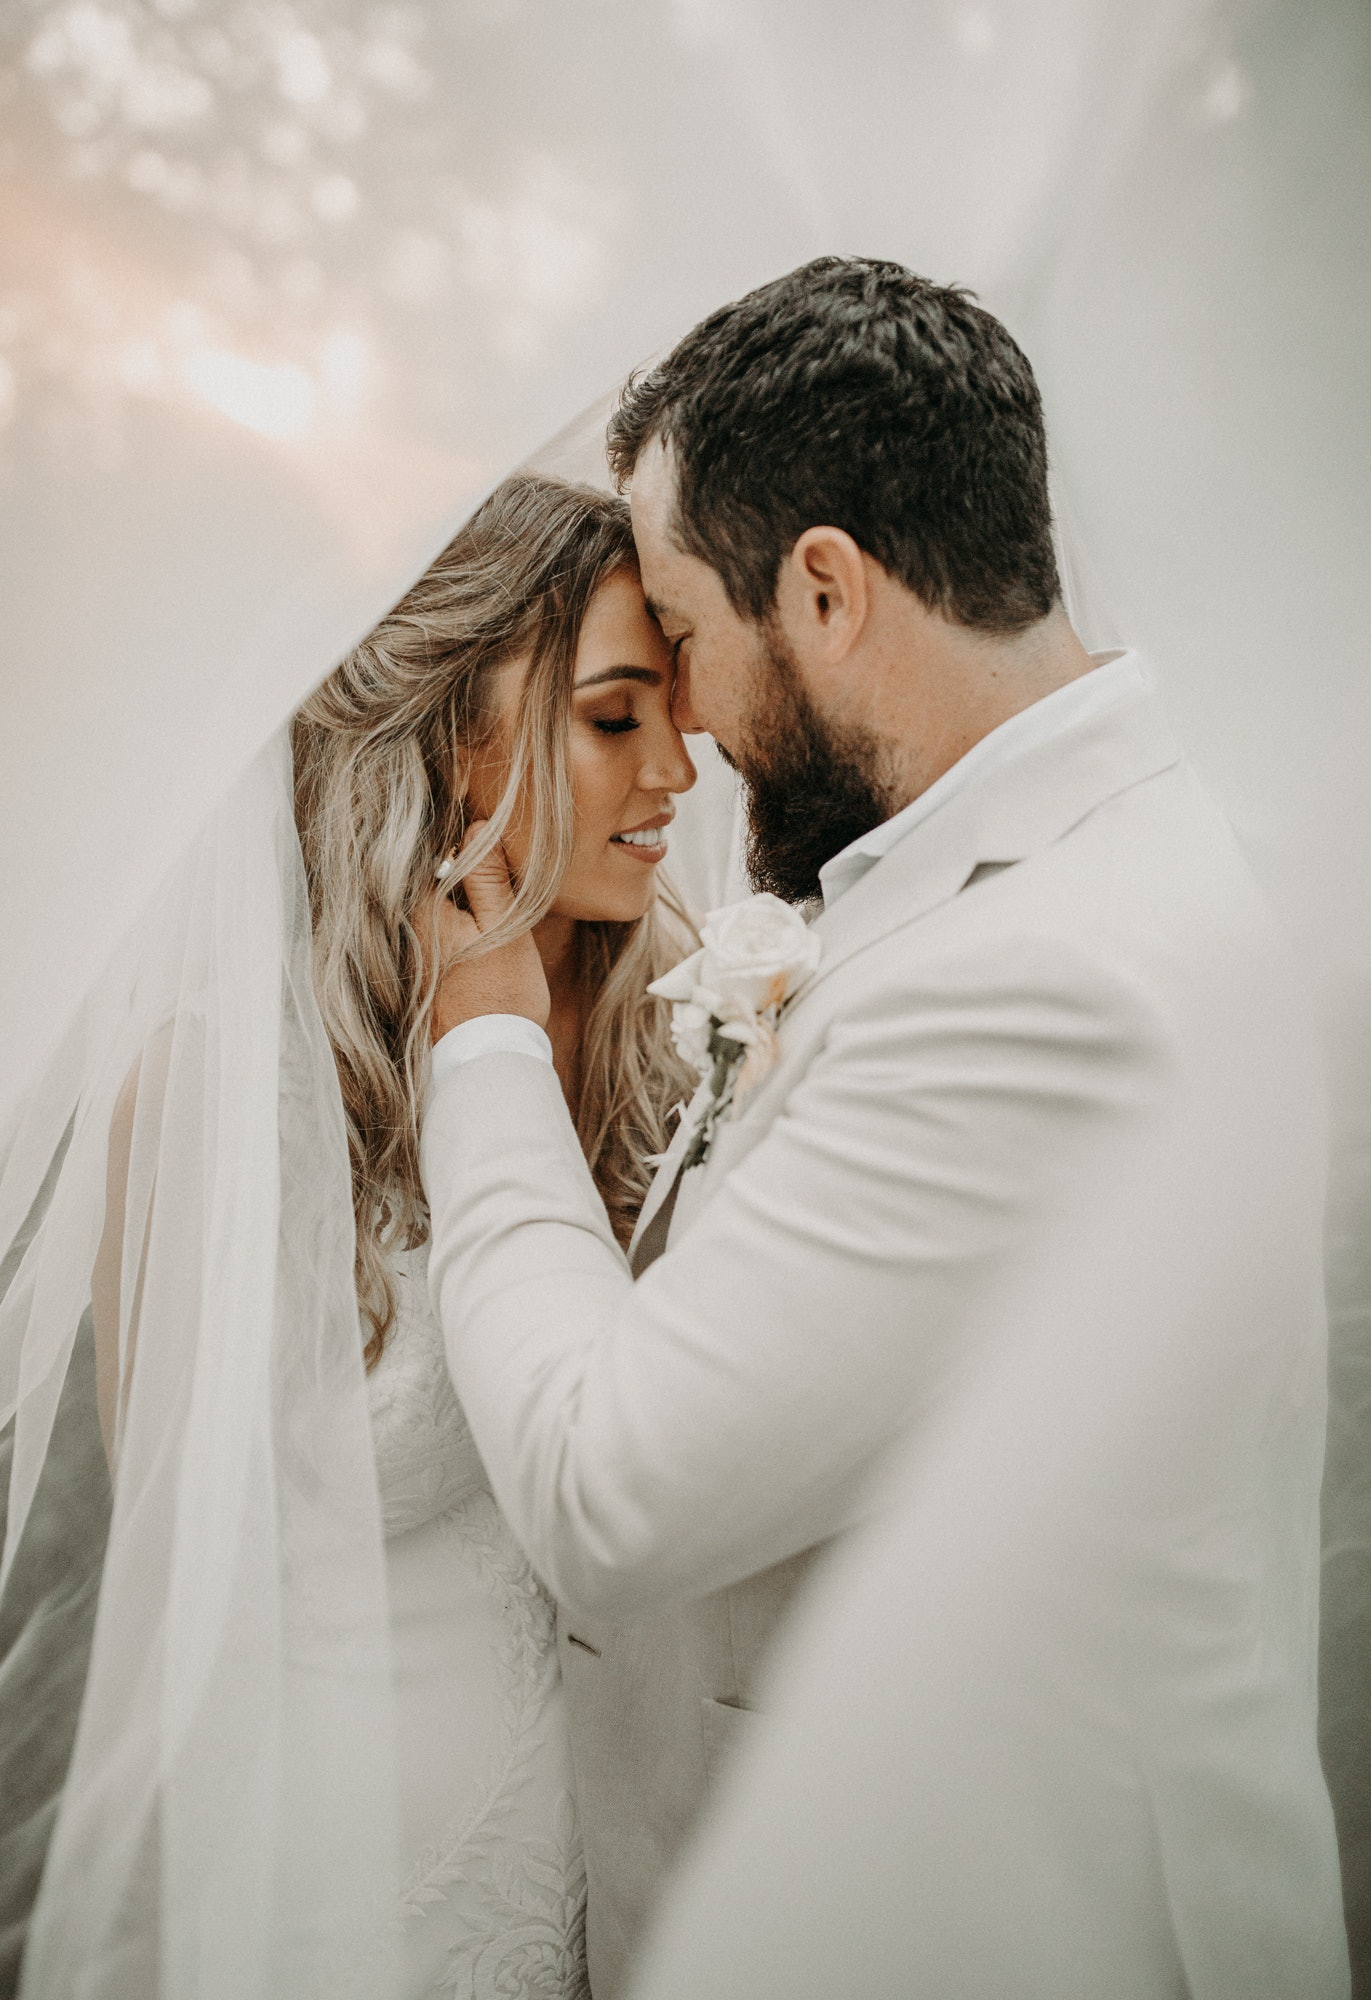 Bride and Groom touching faces